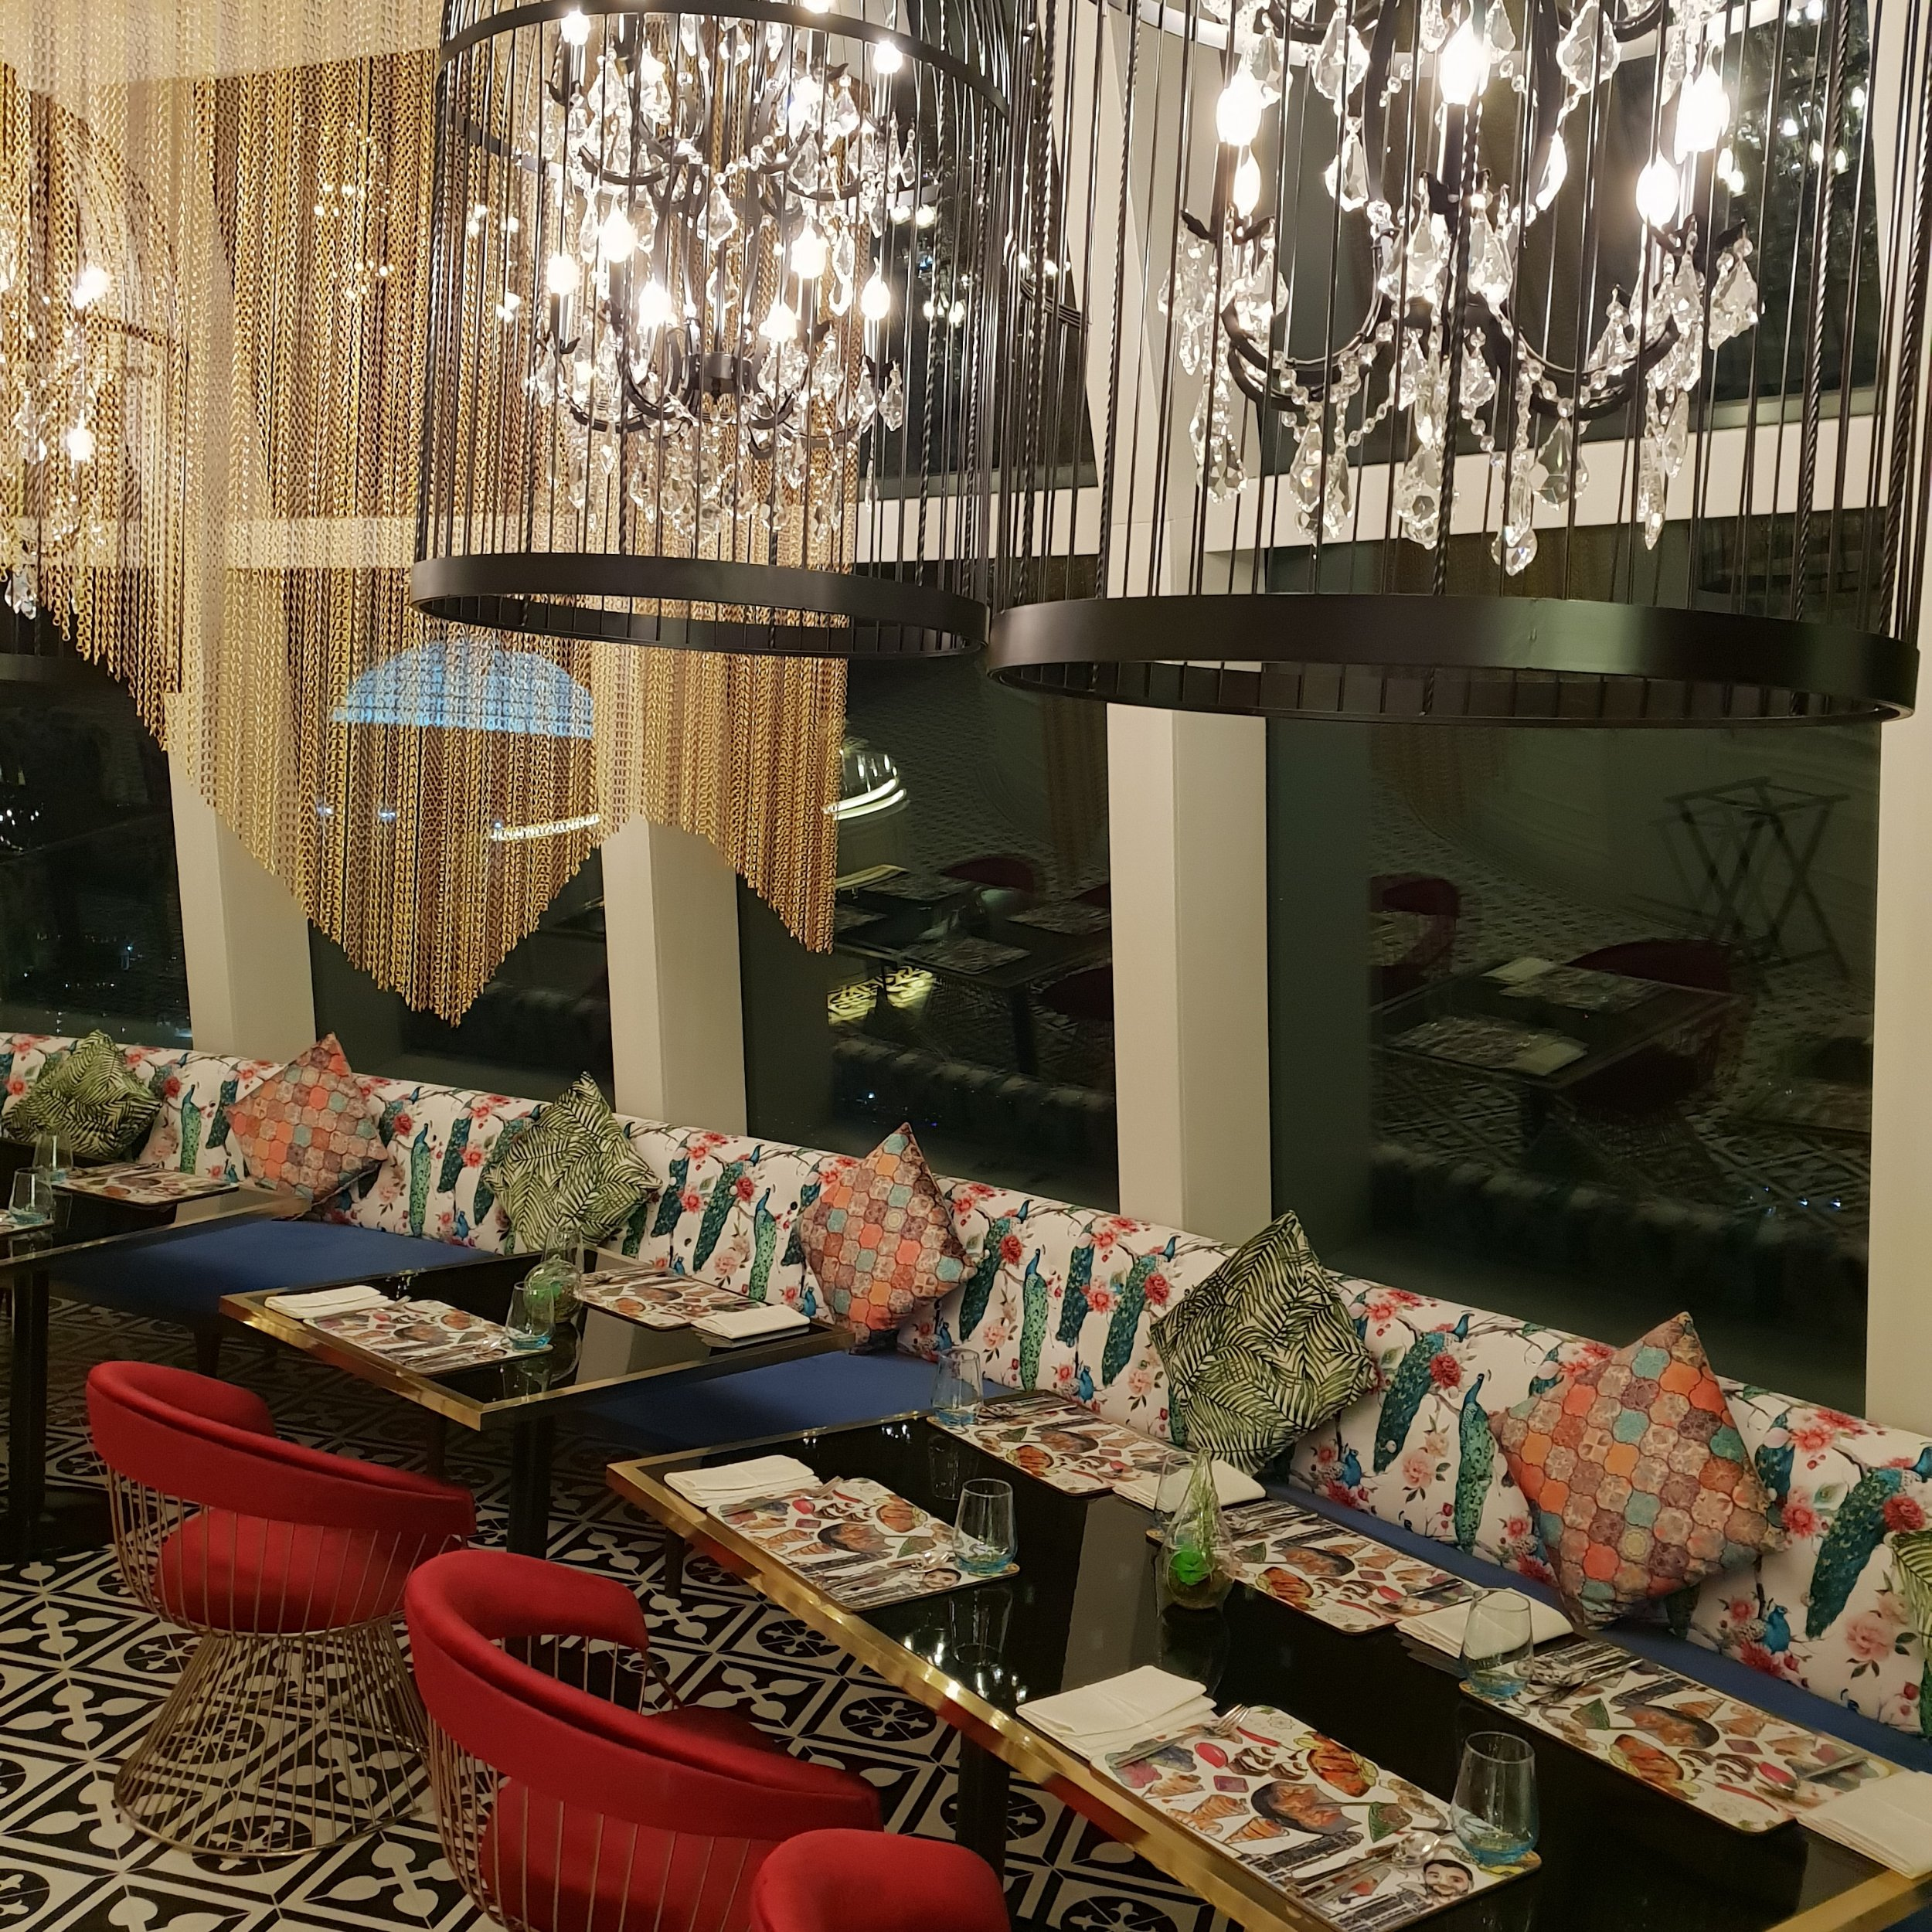 INDEGO 360 by Vineet. One of the highest Indian restaurants in the world. - New In Doha - Inspiring You to Explore Qatar